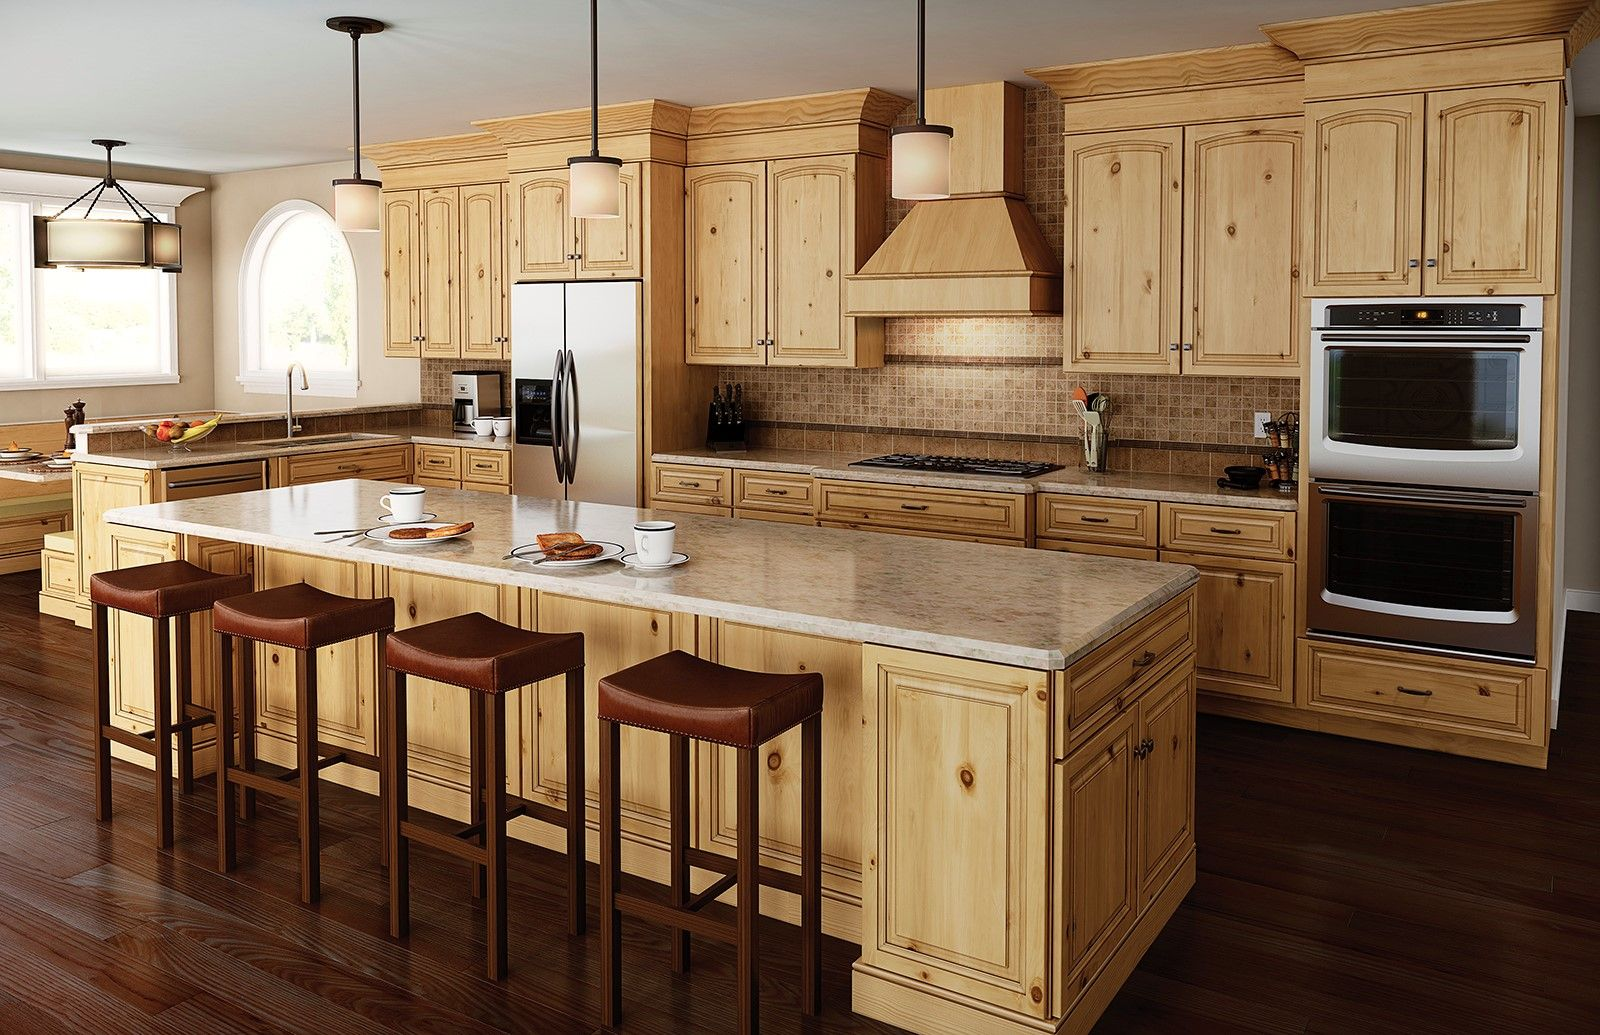 images of kitchen cabinets in natural rustic birch google search rh pinterest com